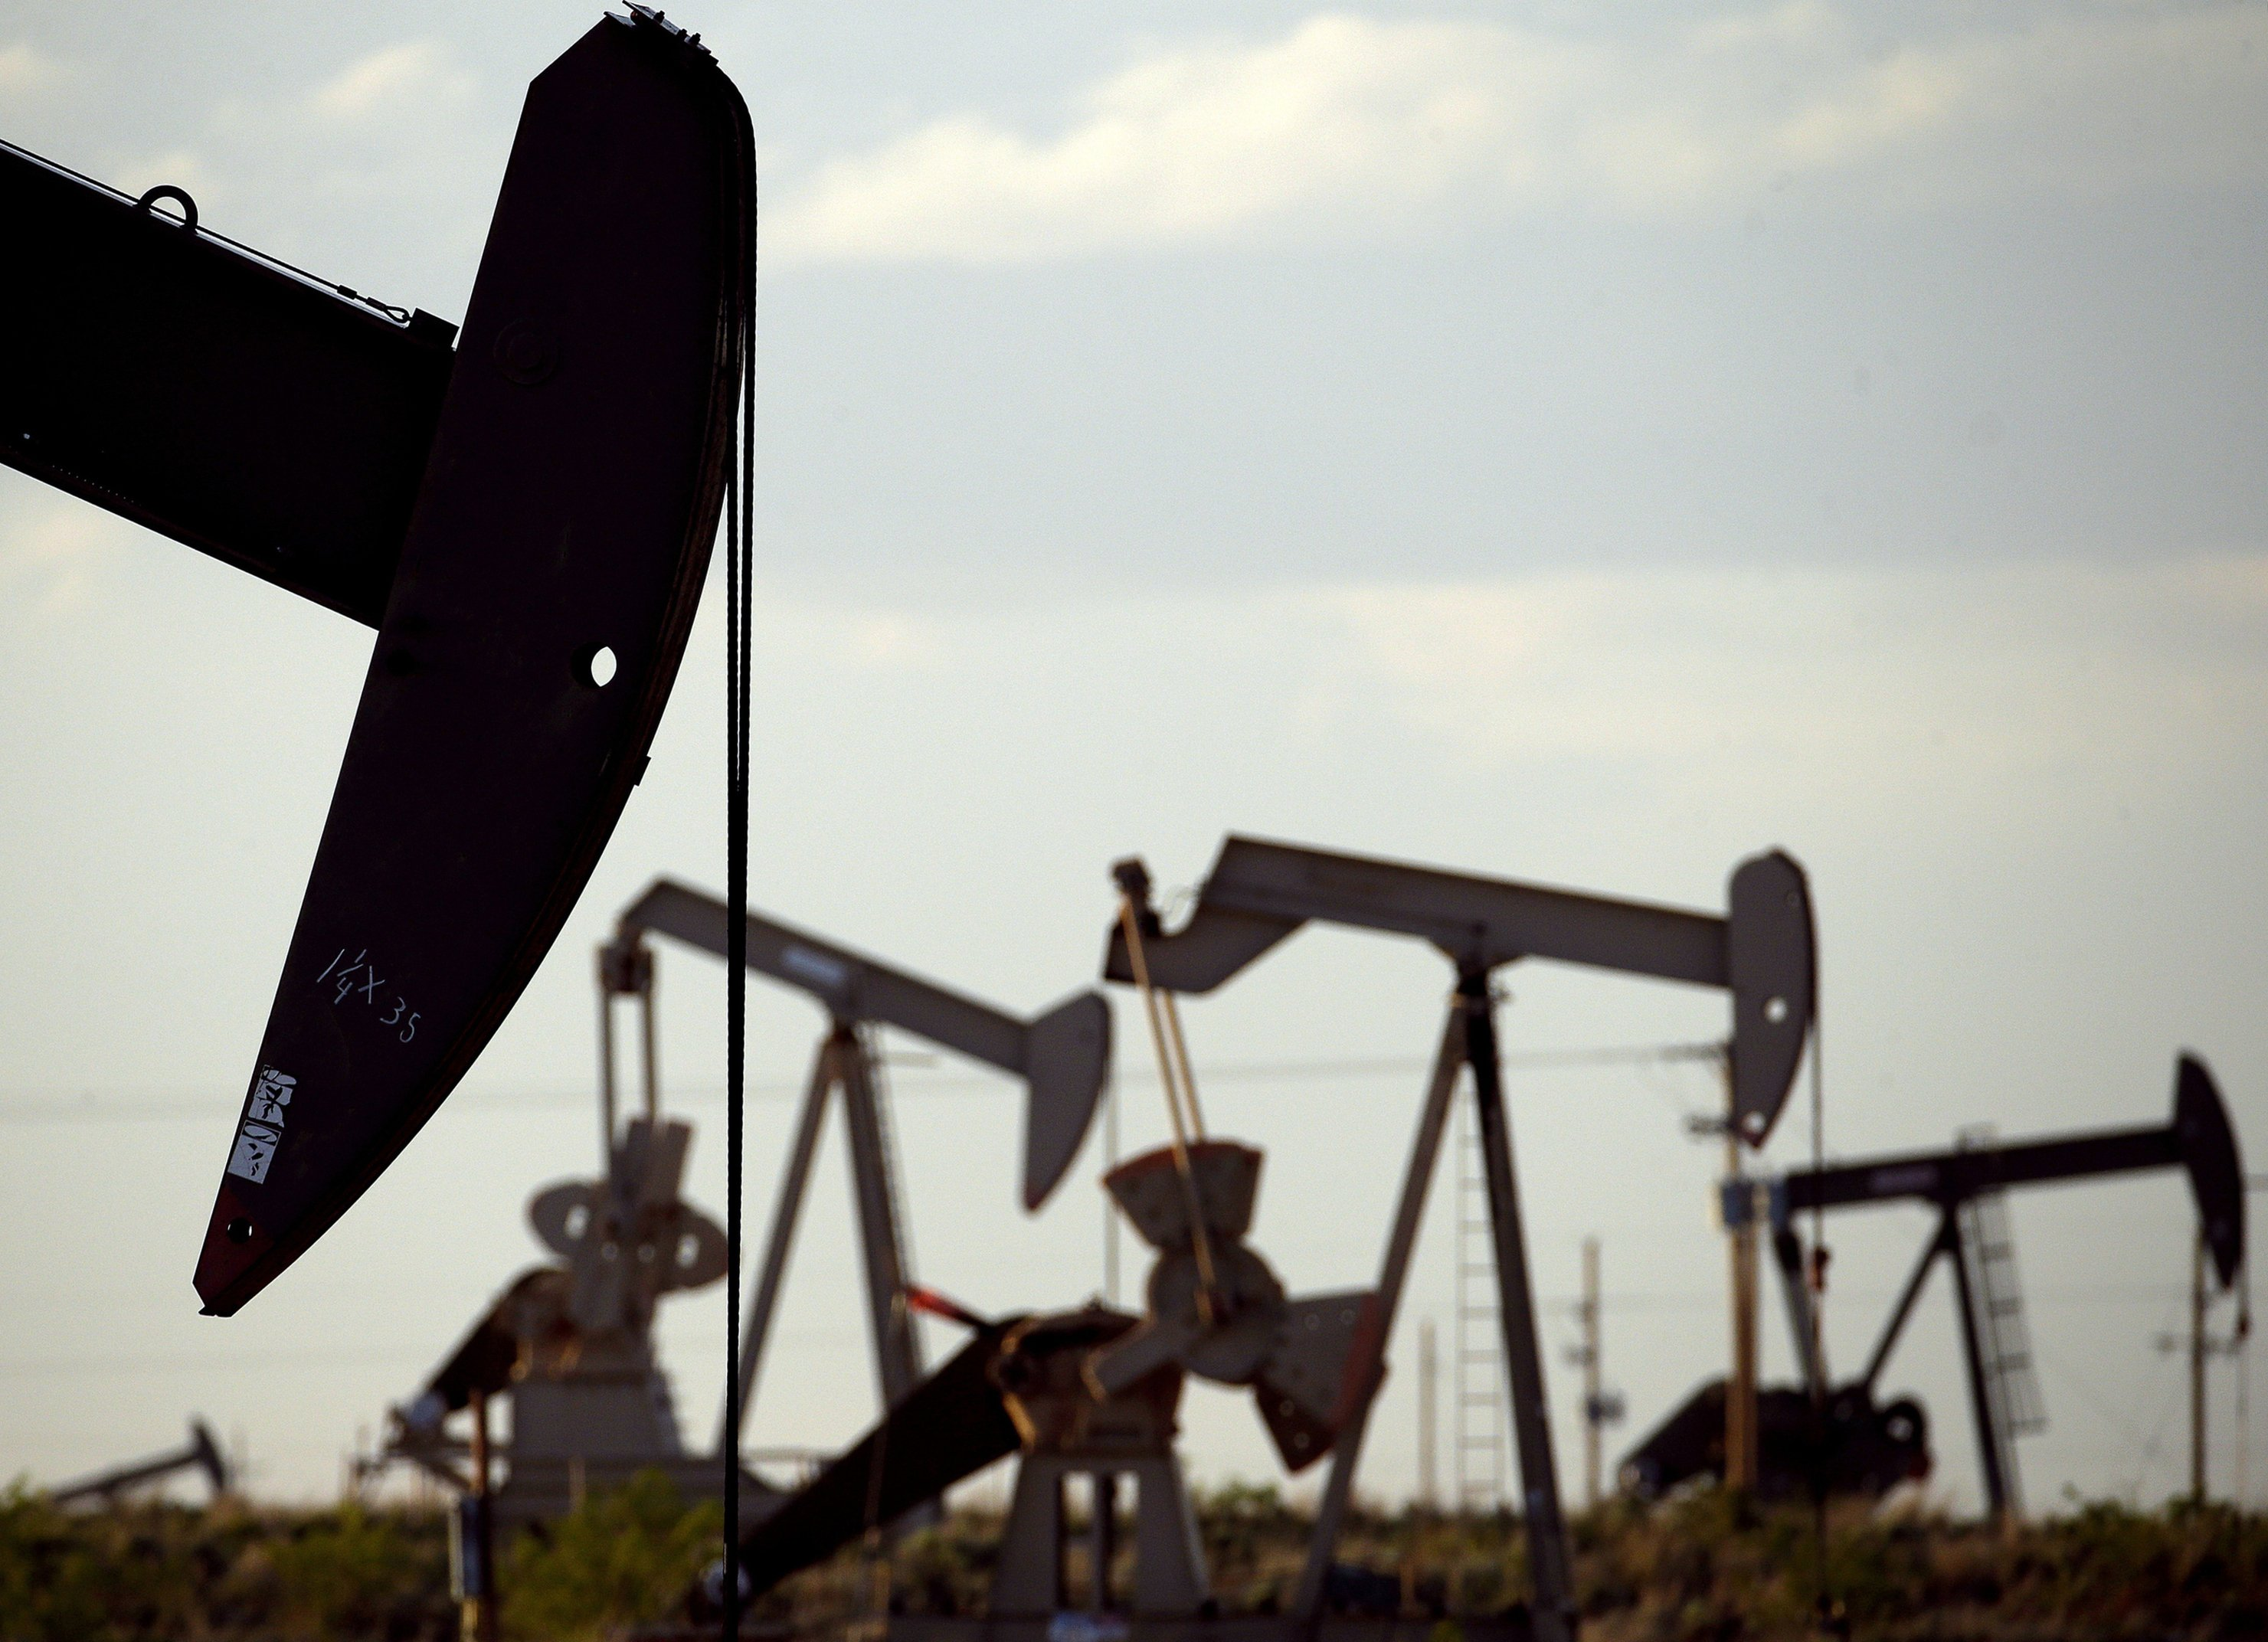 The Latest: US proposes easing rules on methane emissions